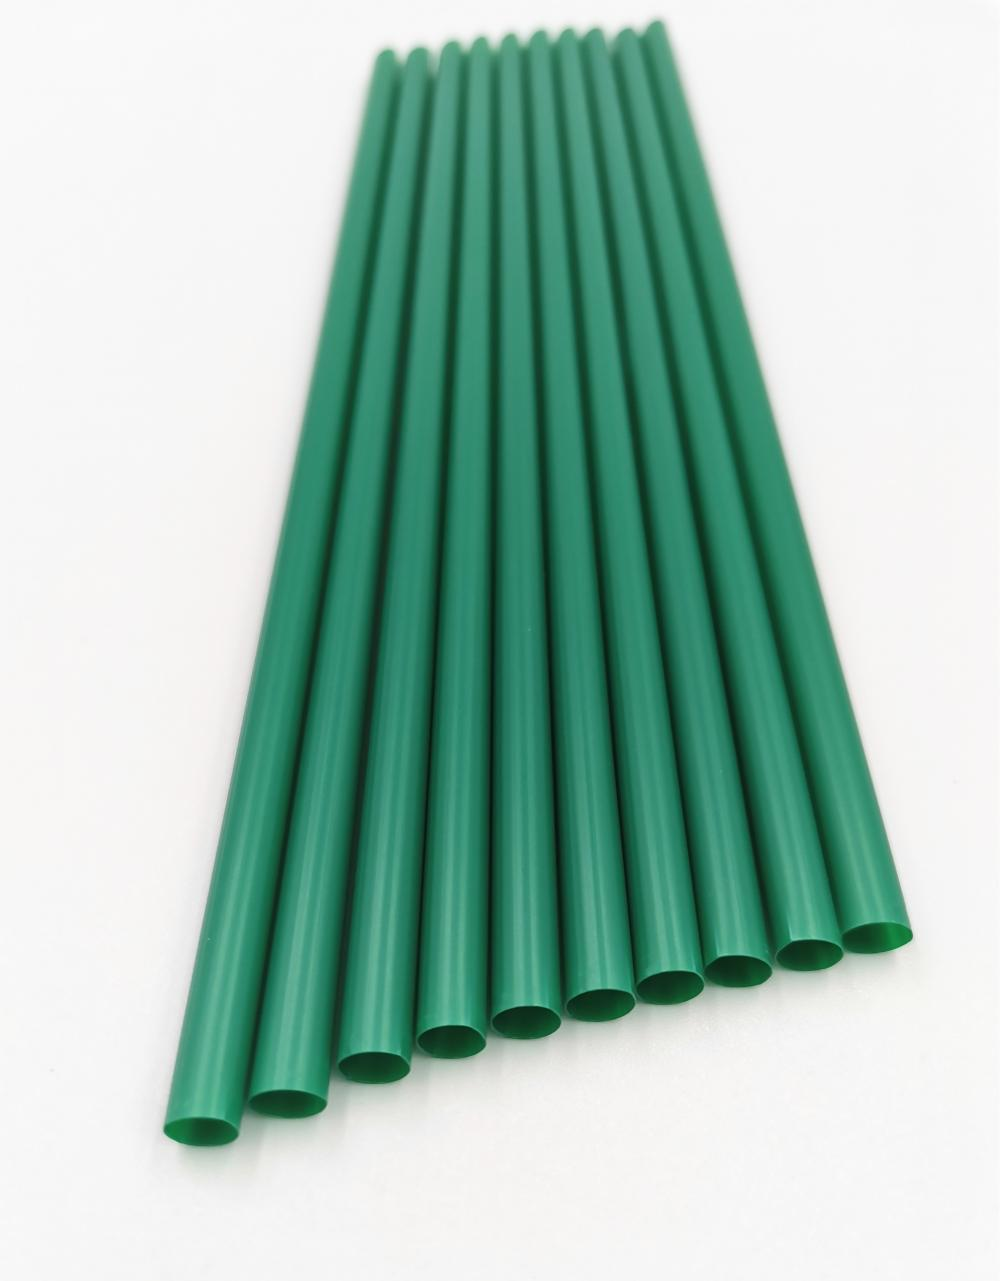 Plant-Based PLA Compostable Straws